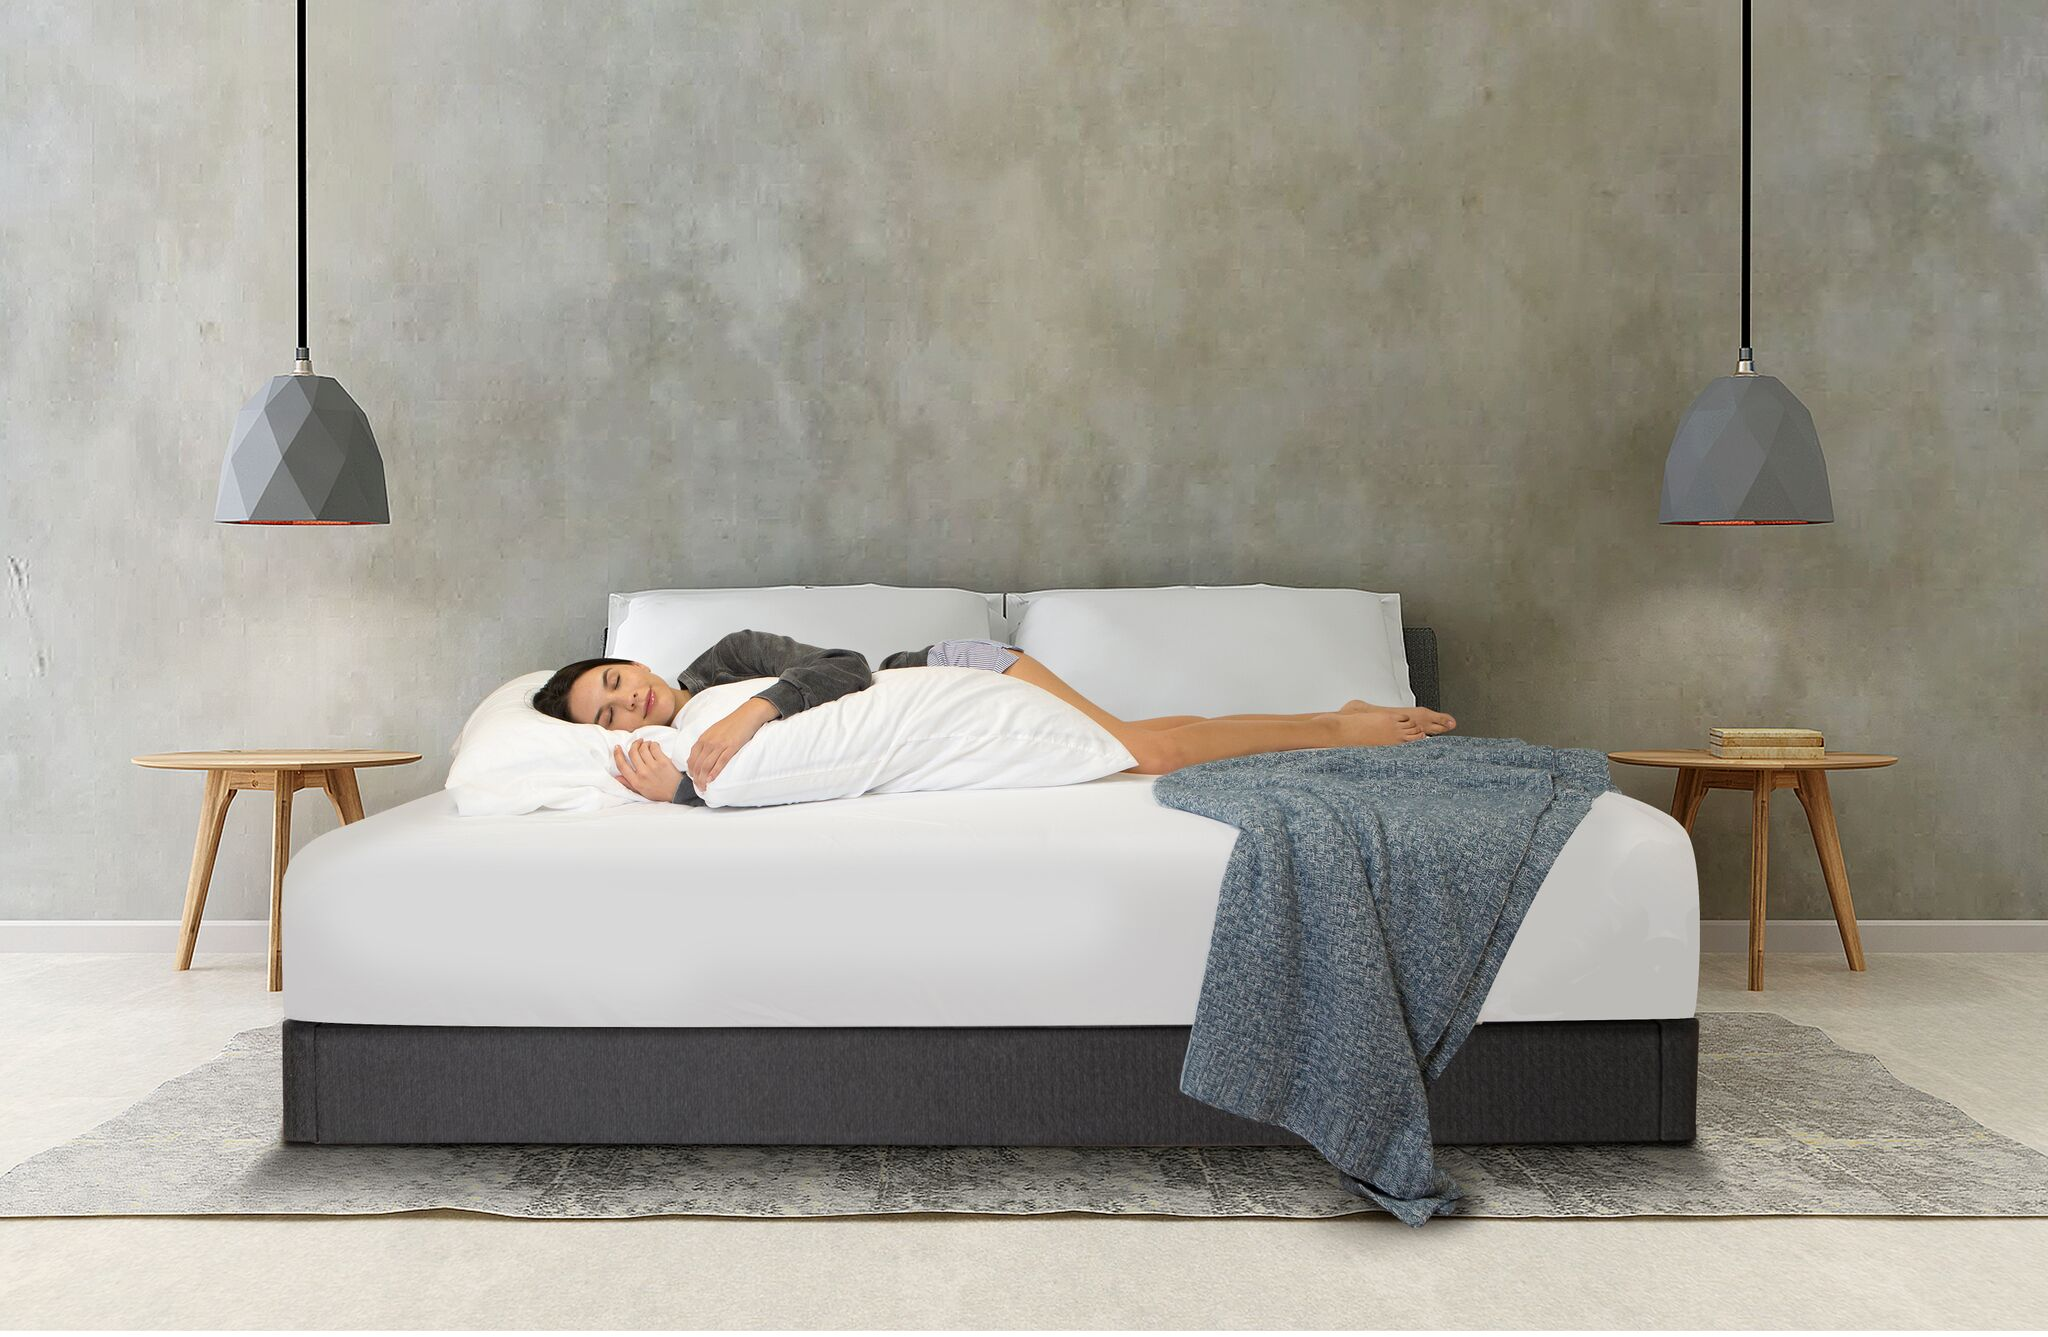 competitive price 1c5c8 a0b8d Nectar Memory Foam Mattress Review | LoveToKnow